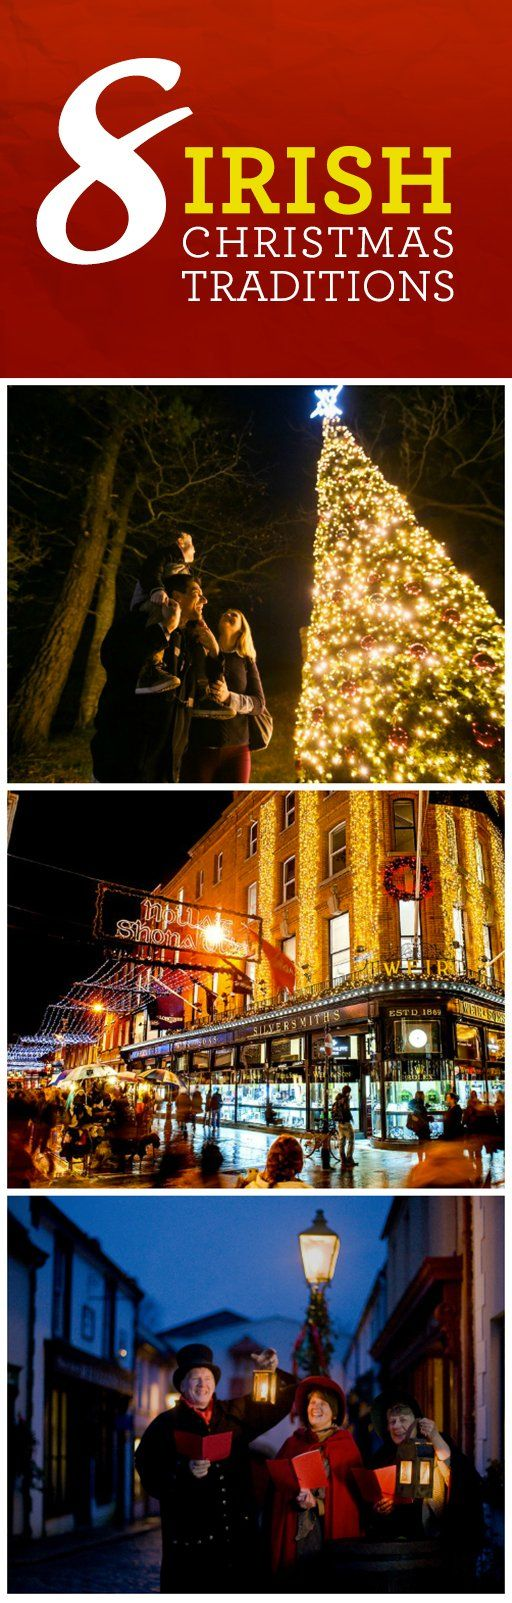 From Christmas trees to magical mistletoe, Ireland is big on traditions at this most wonderful time of the year. Festive greetings come in different languages, and we've even written our own Christmas carols. This merry season, we would like to wish you all a Happy Christmas from Ireland!